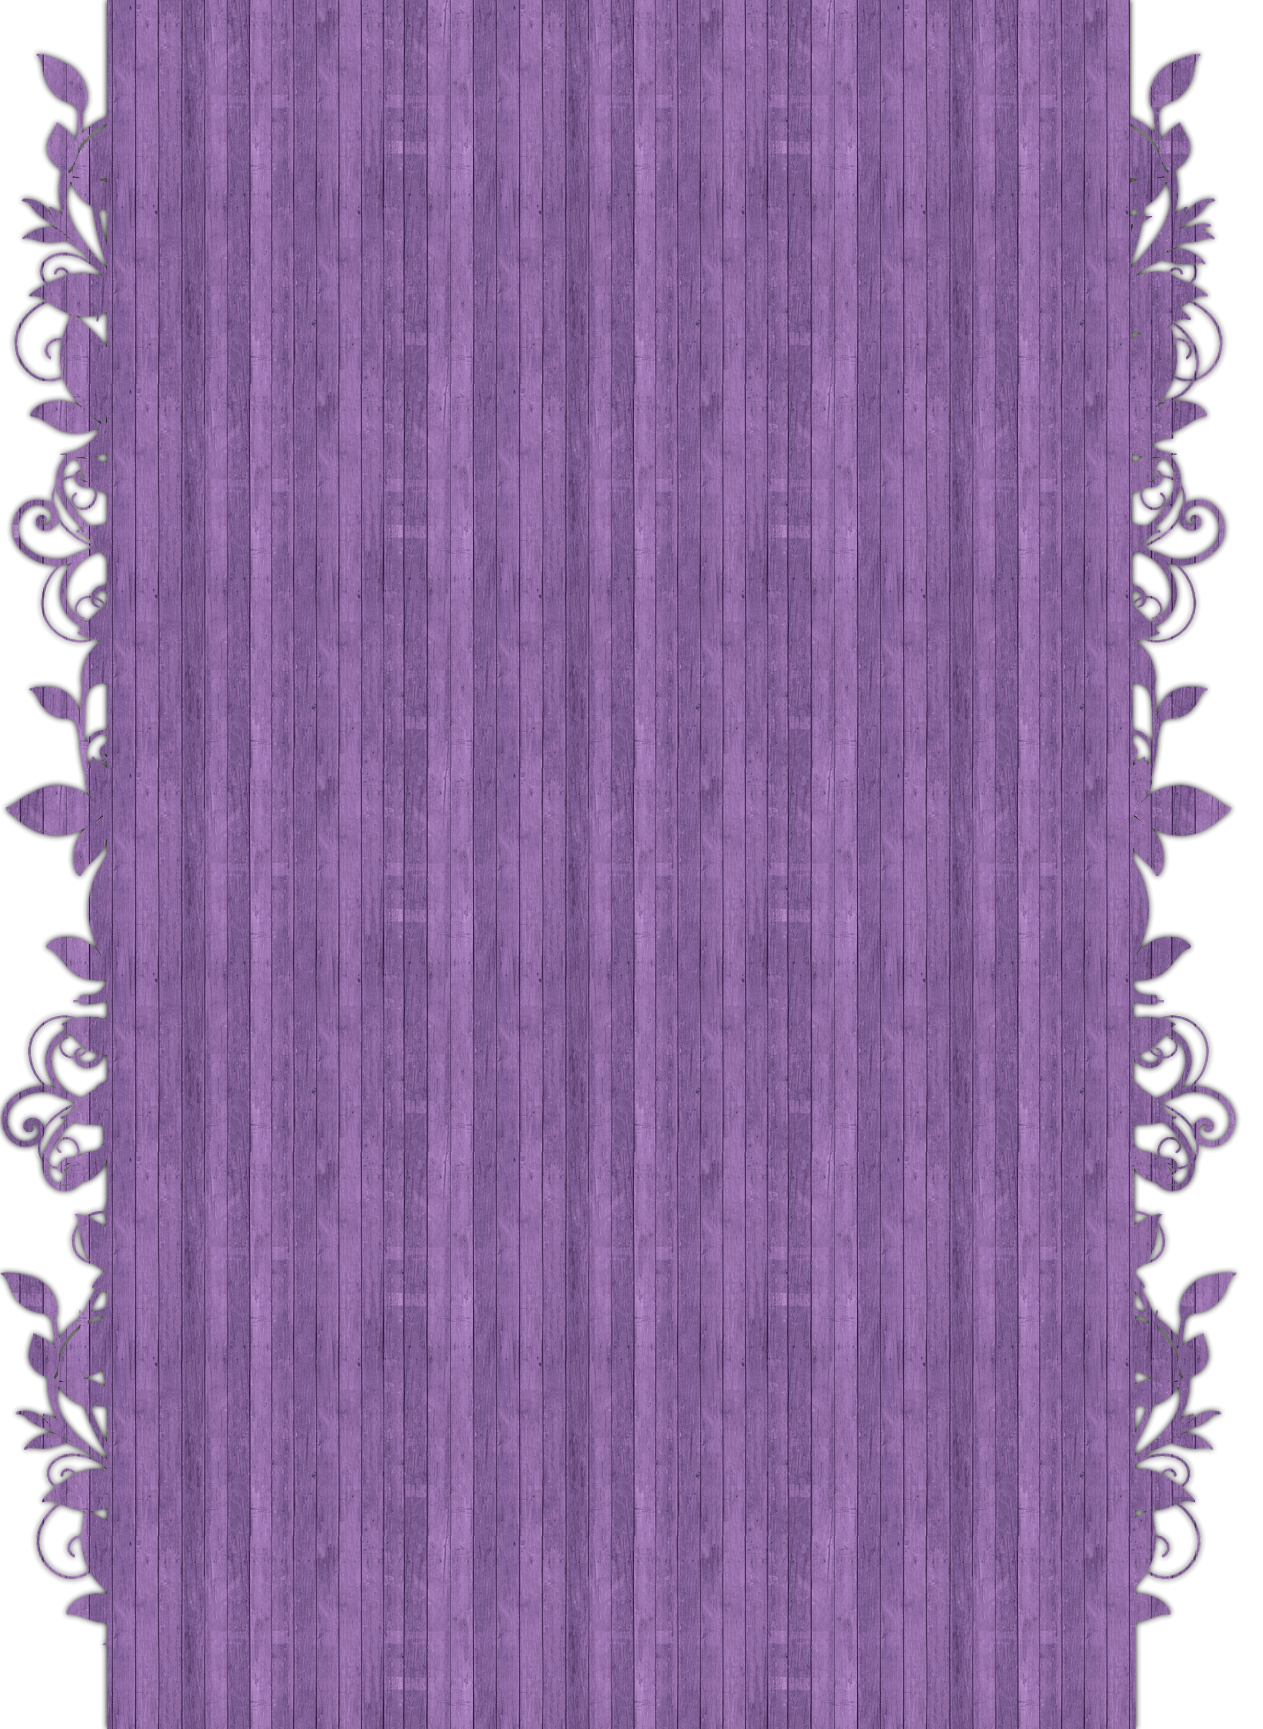 background (purple floral) by Mircia90 on DeviantArt